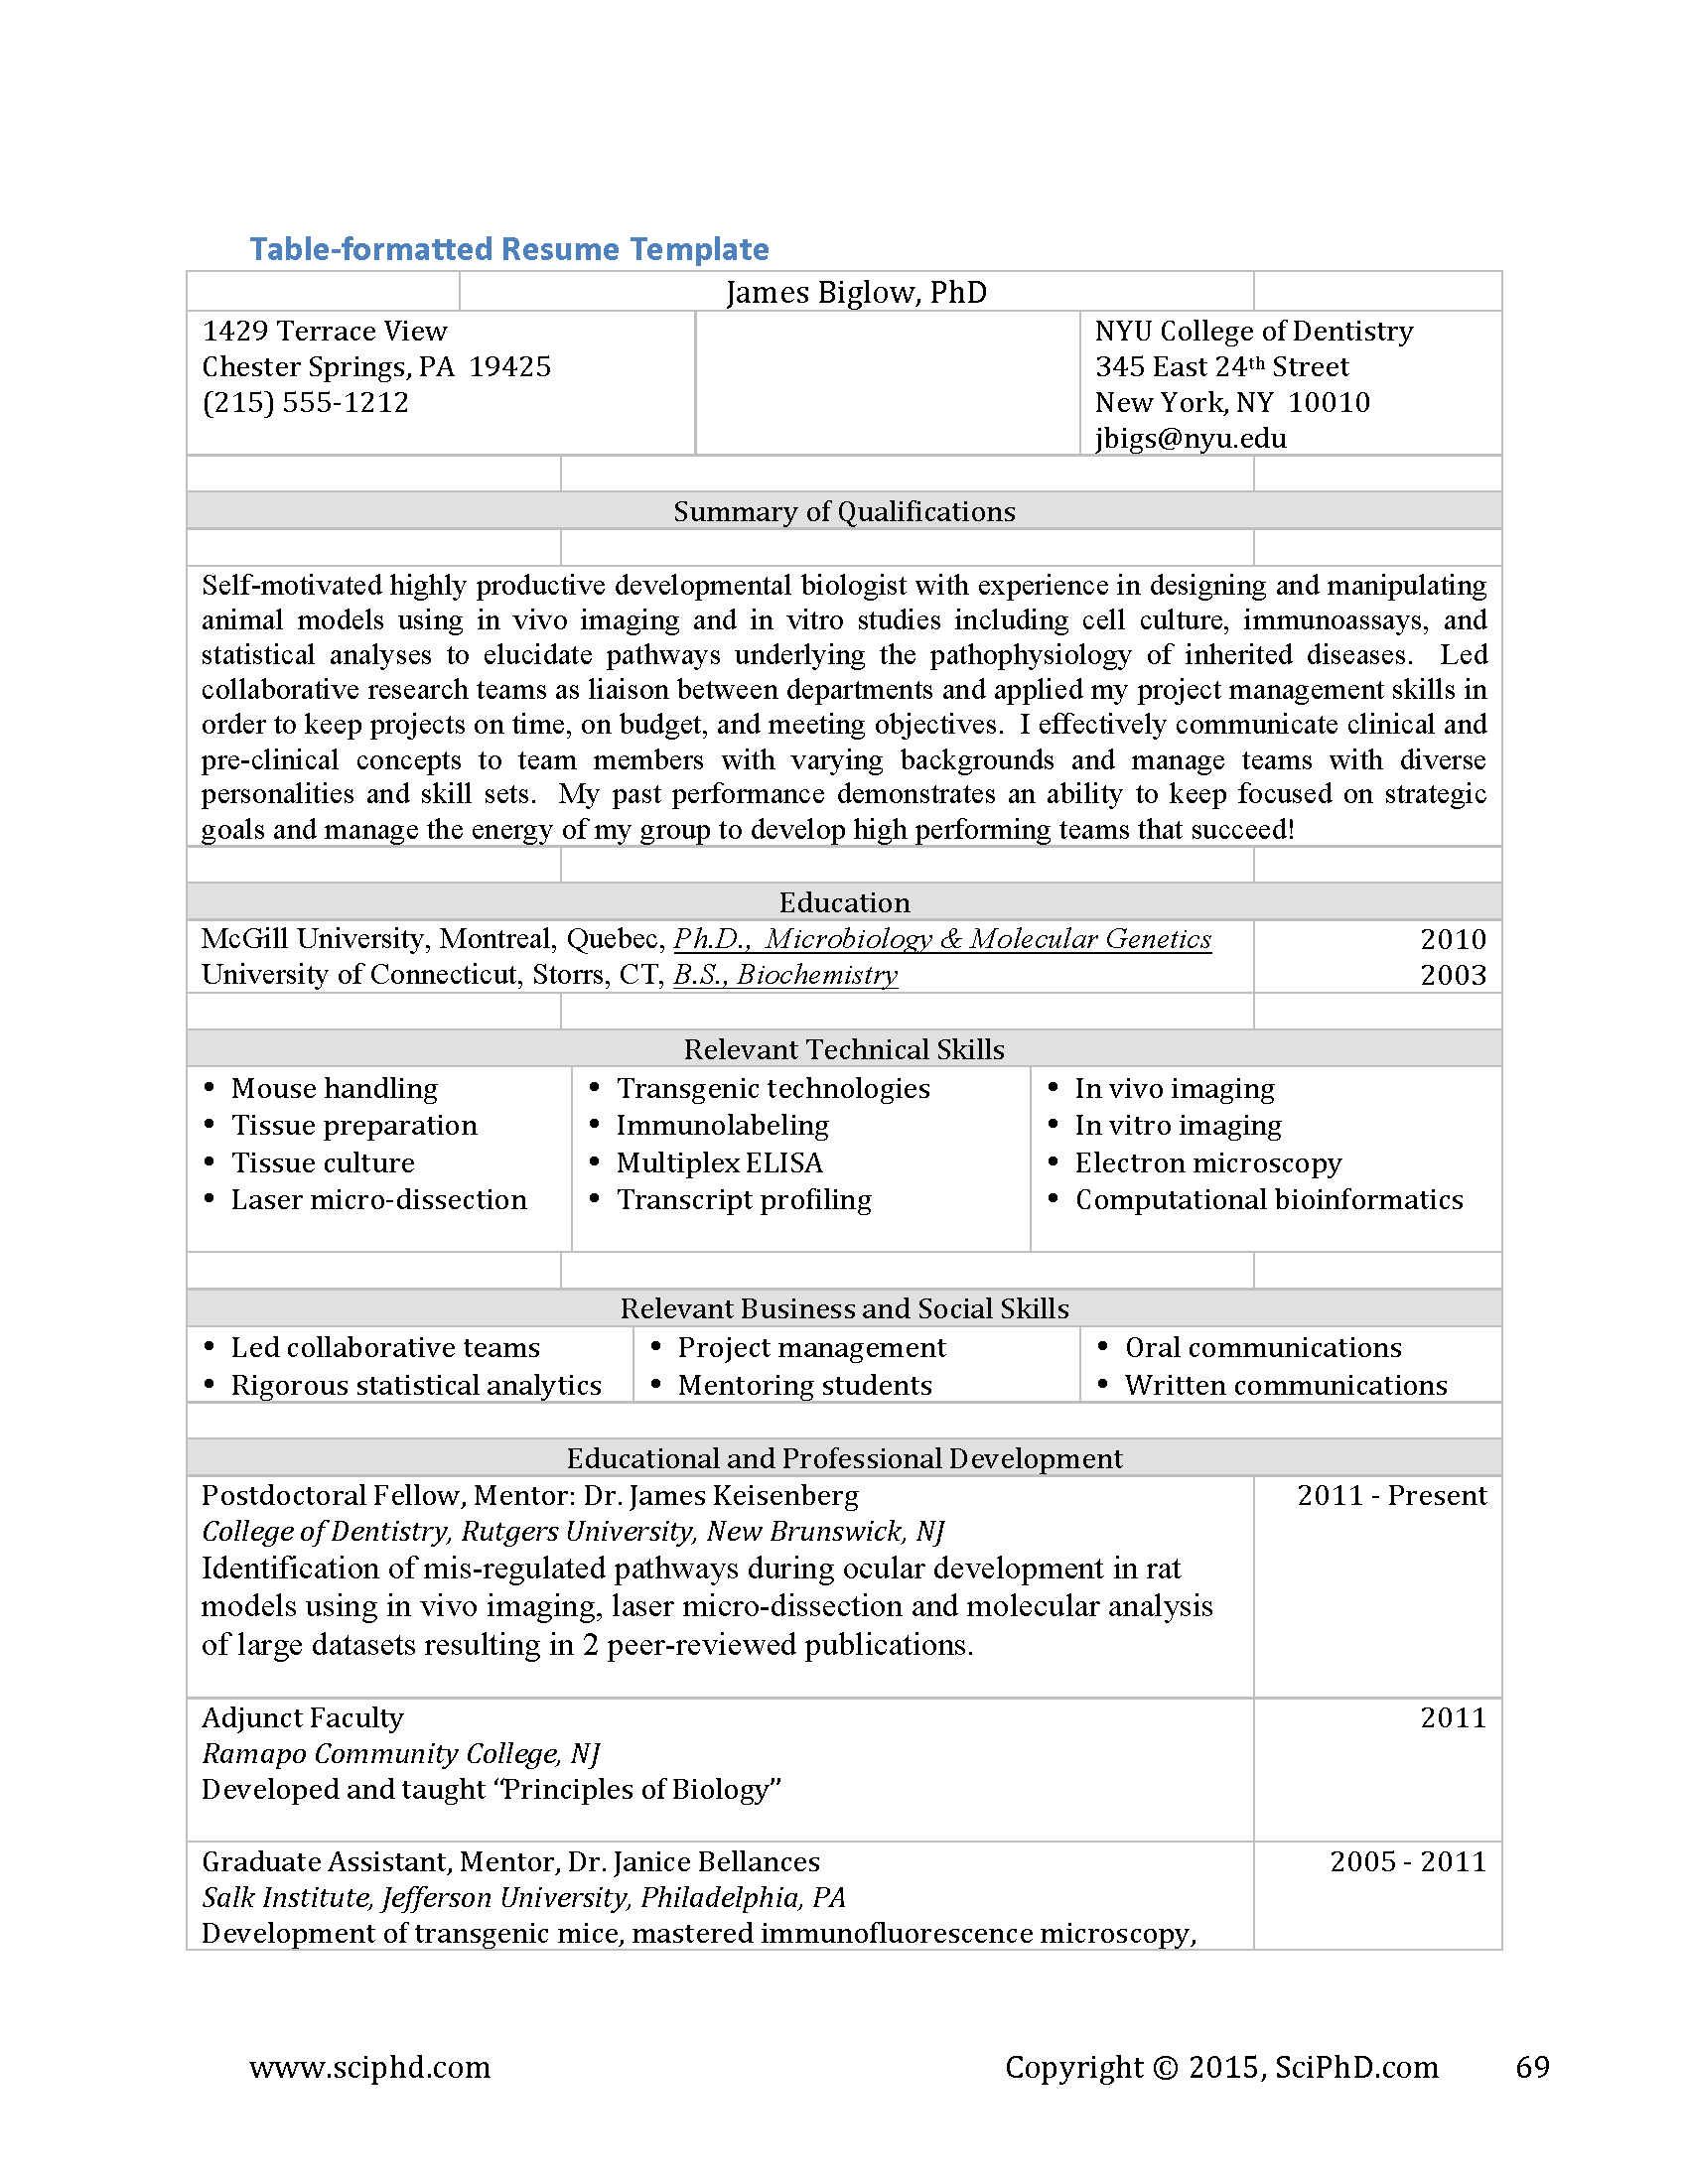 targeted resume example page 1